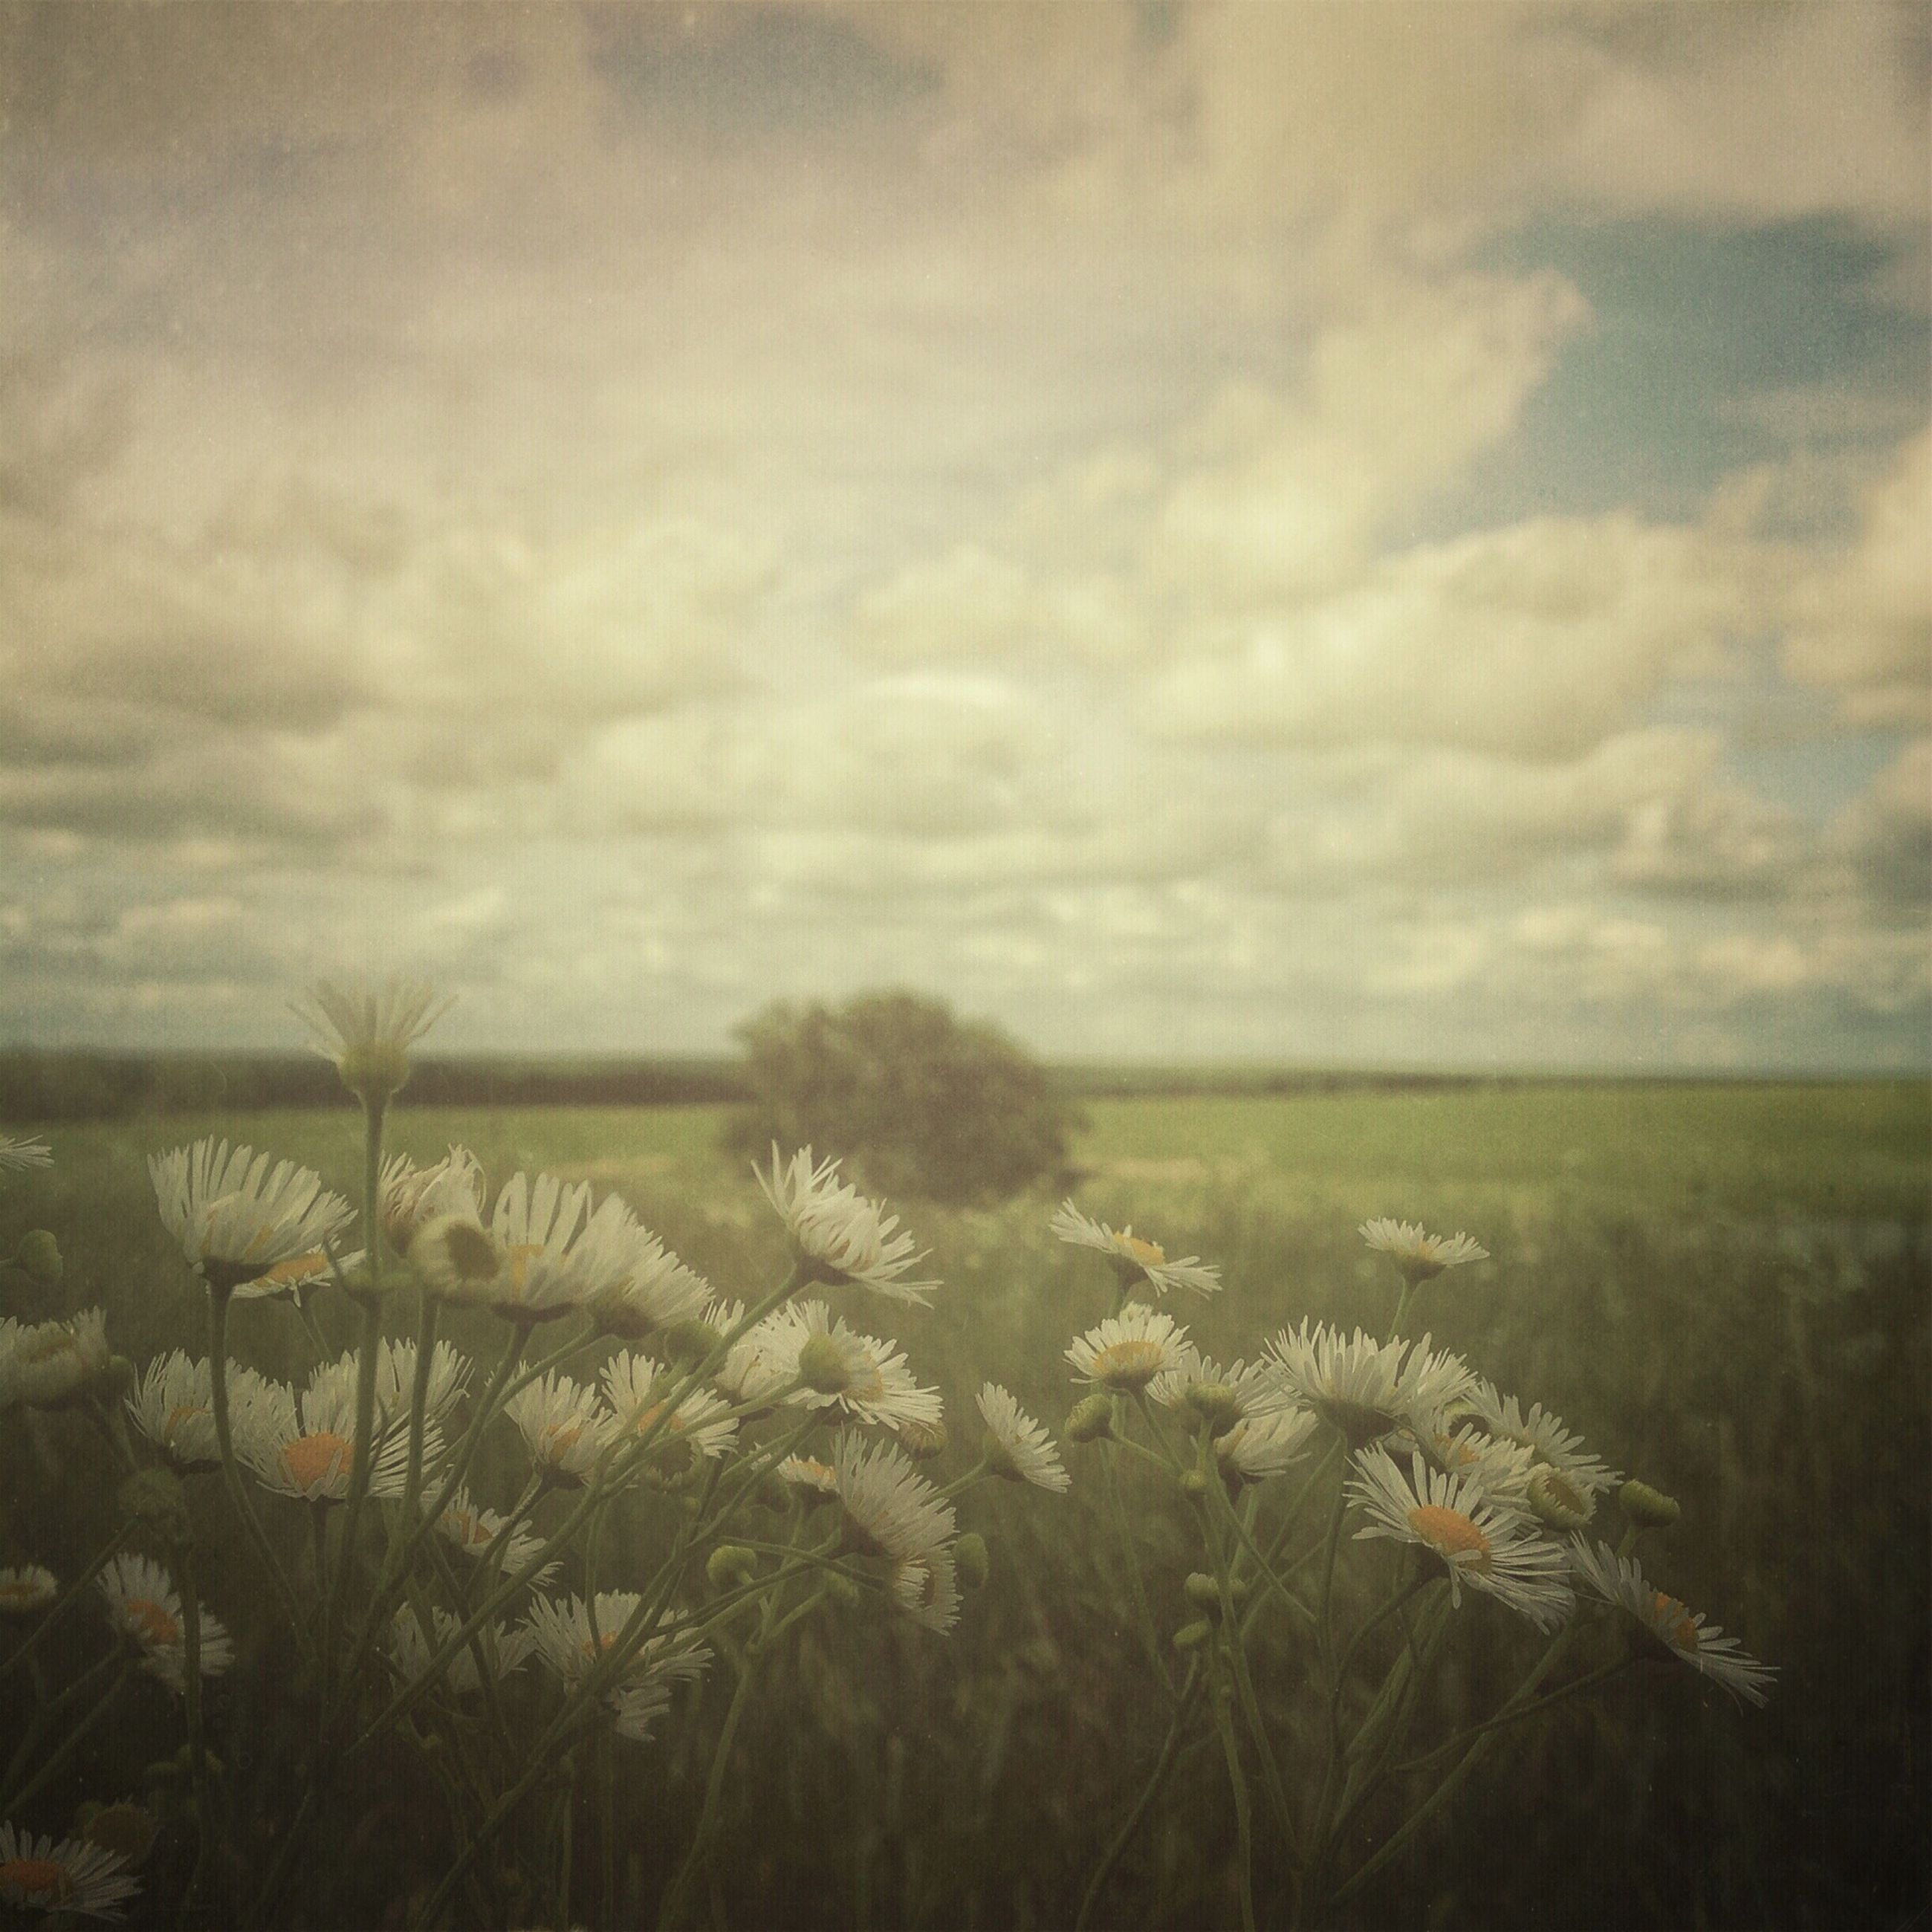 flower, sky, growth, beauty in nature, field, cloud - sky, plant, nature, tranquil scene, tranquility, landscape, cloudy, freshness, scenics, cloud, fragility, day, outdoors, no people, stem